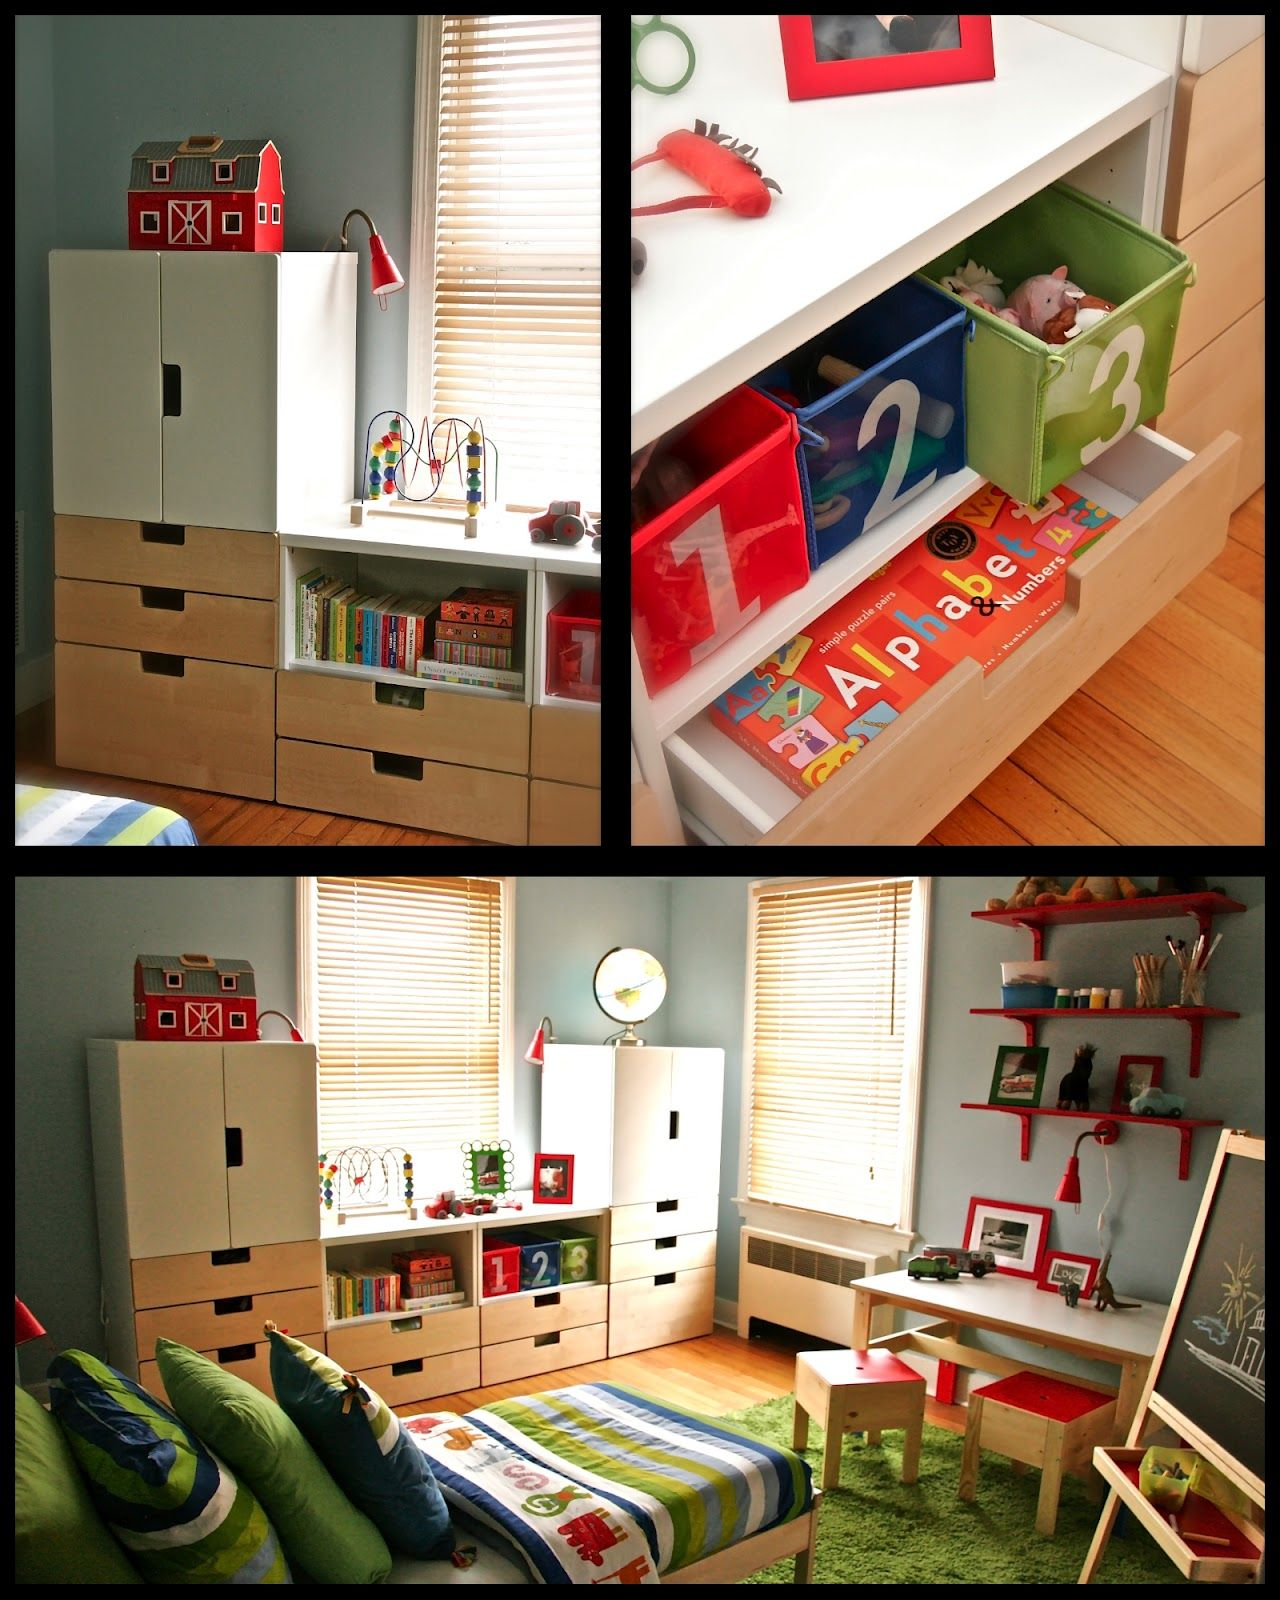 Ikea Chambre Bebe Stuva Catalogue Ikea Complet Full Photos Et Vid Os